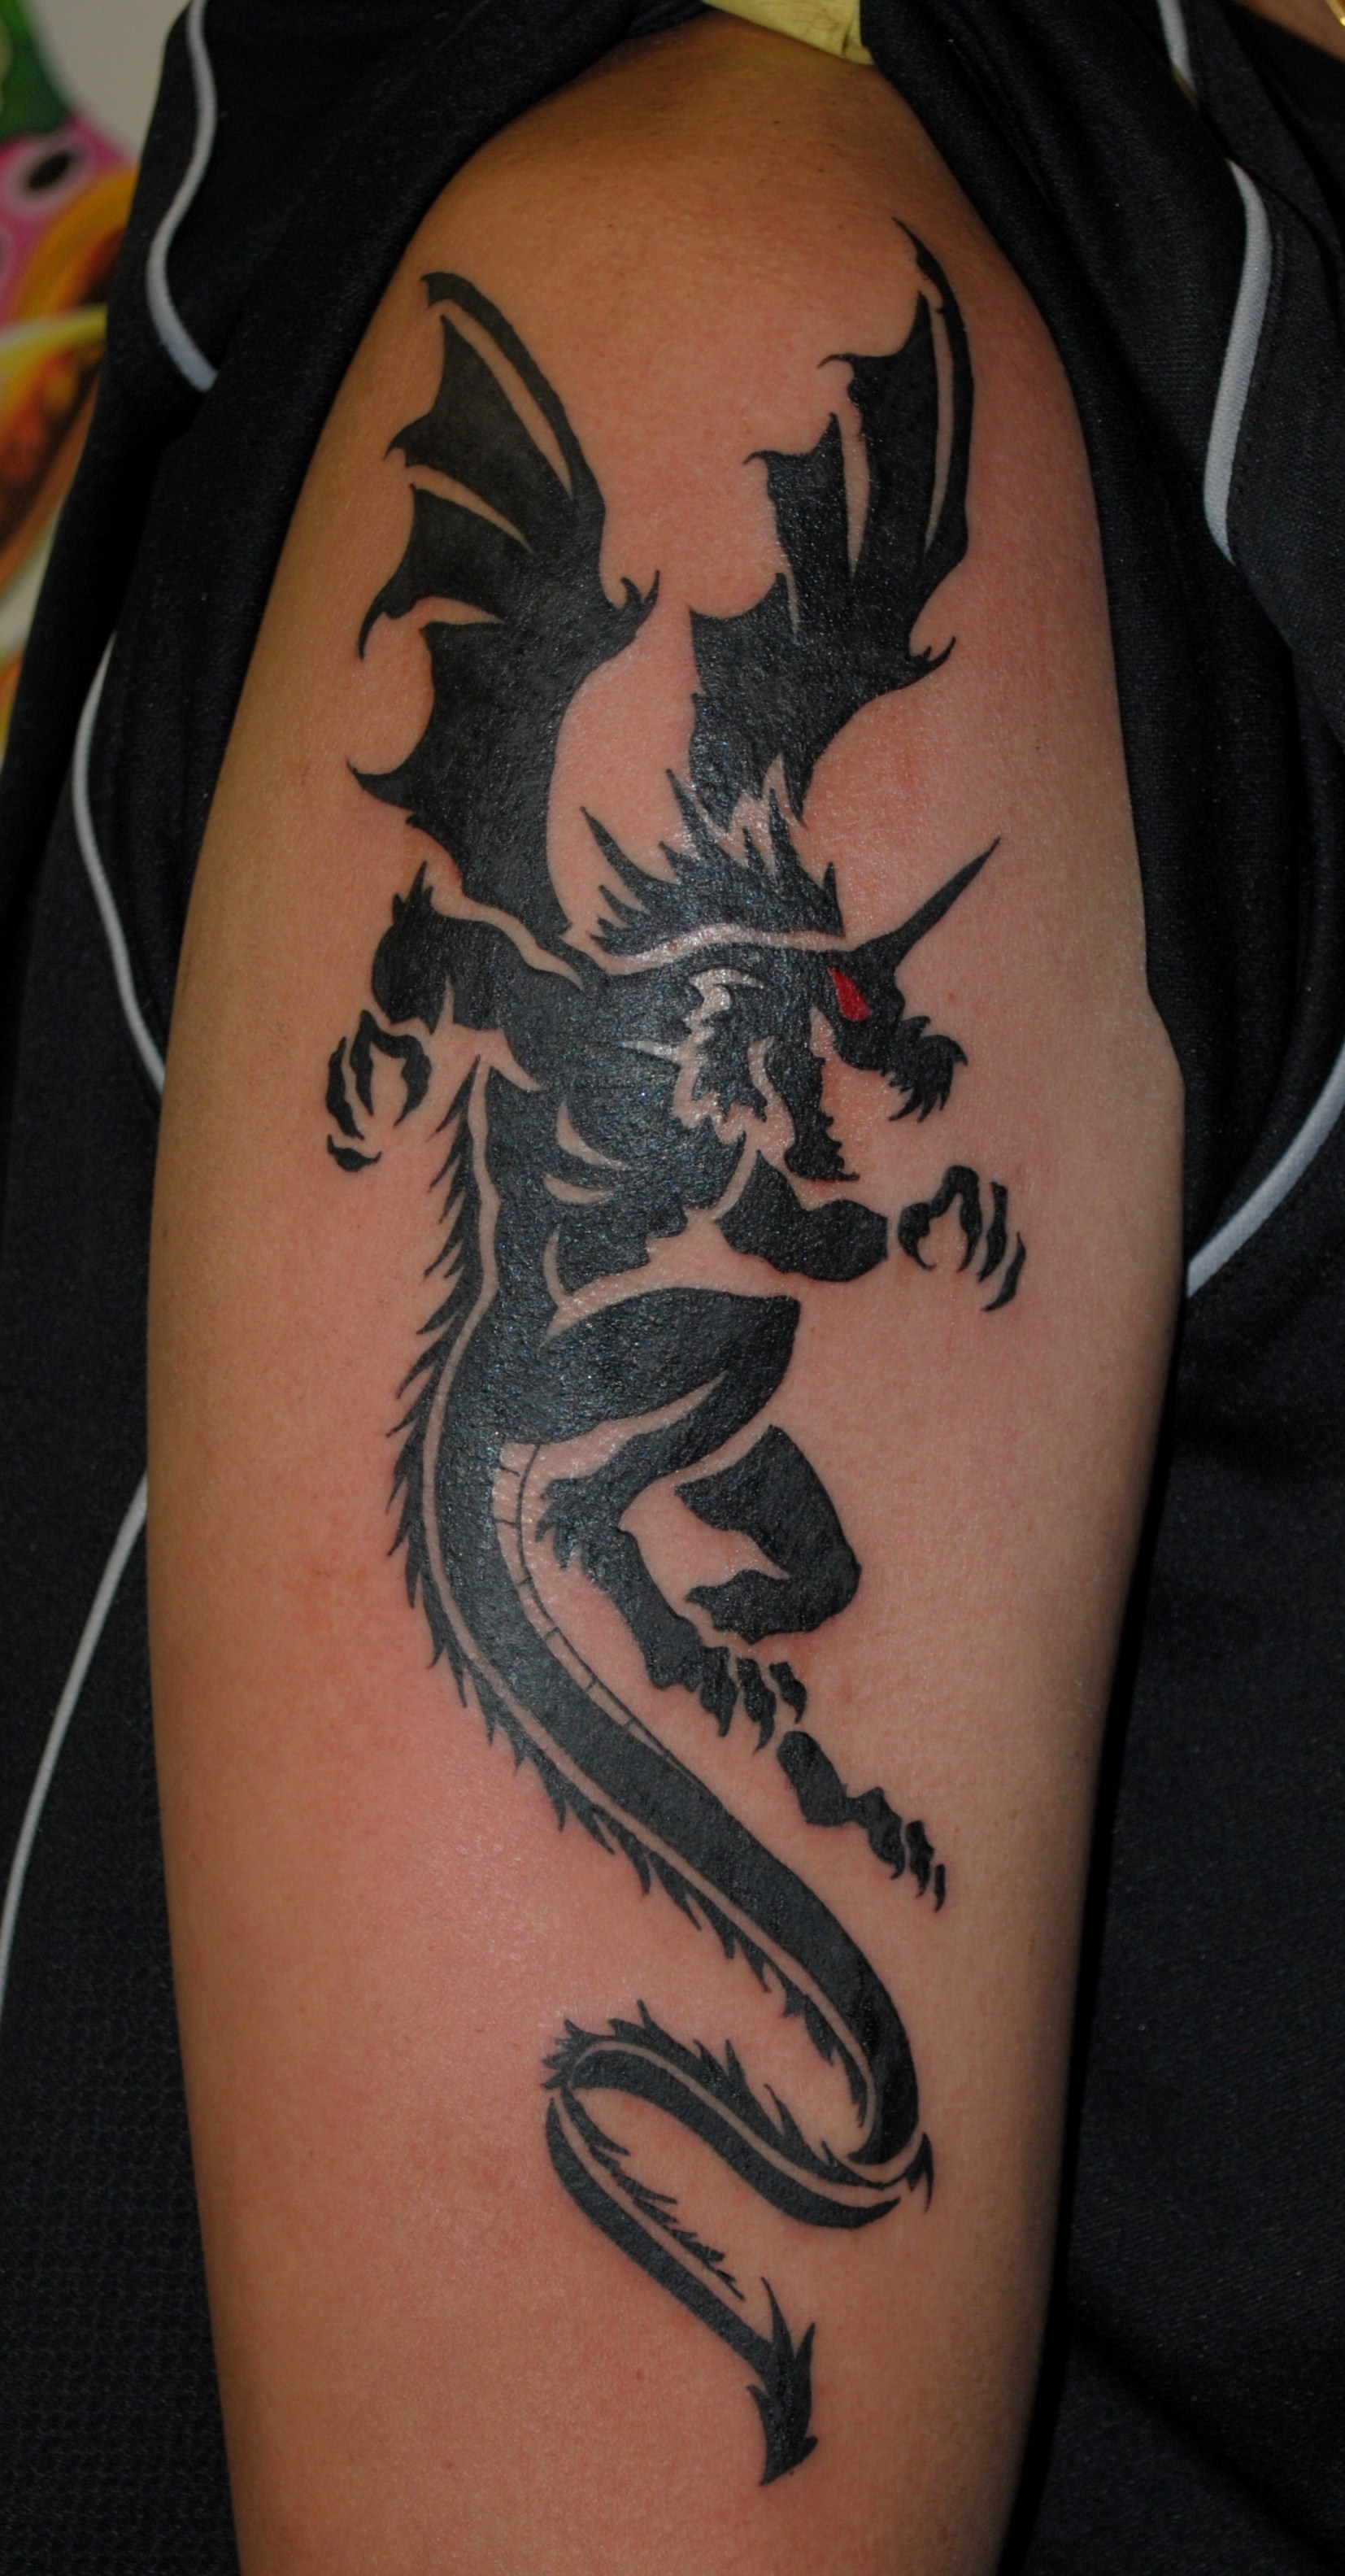 Tribal Dragon Tattoo by The Red Parlour